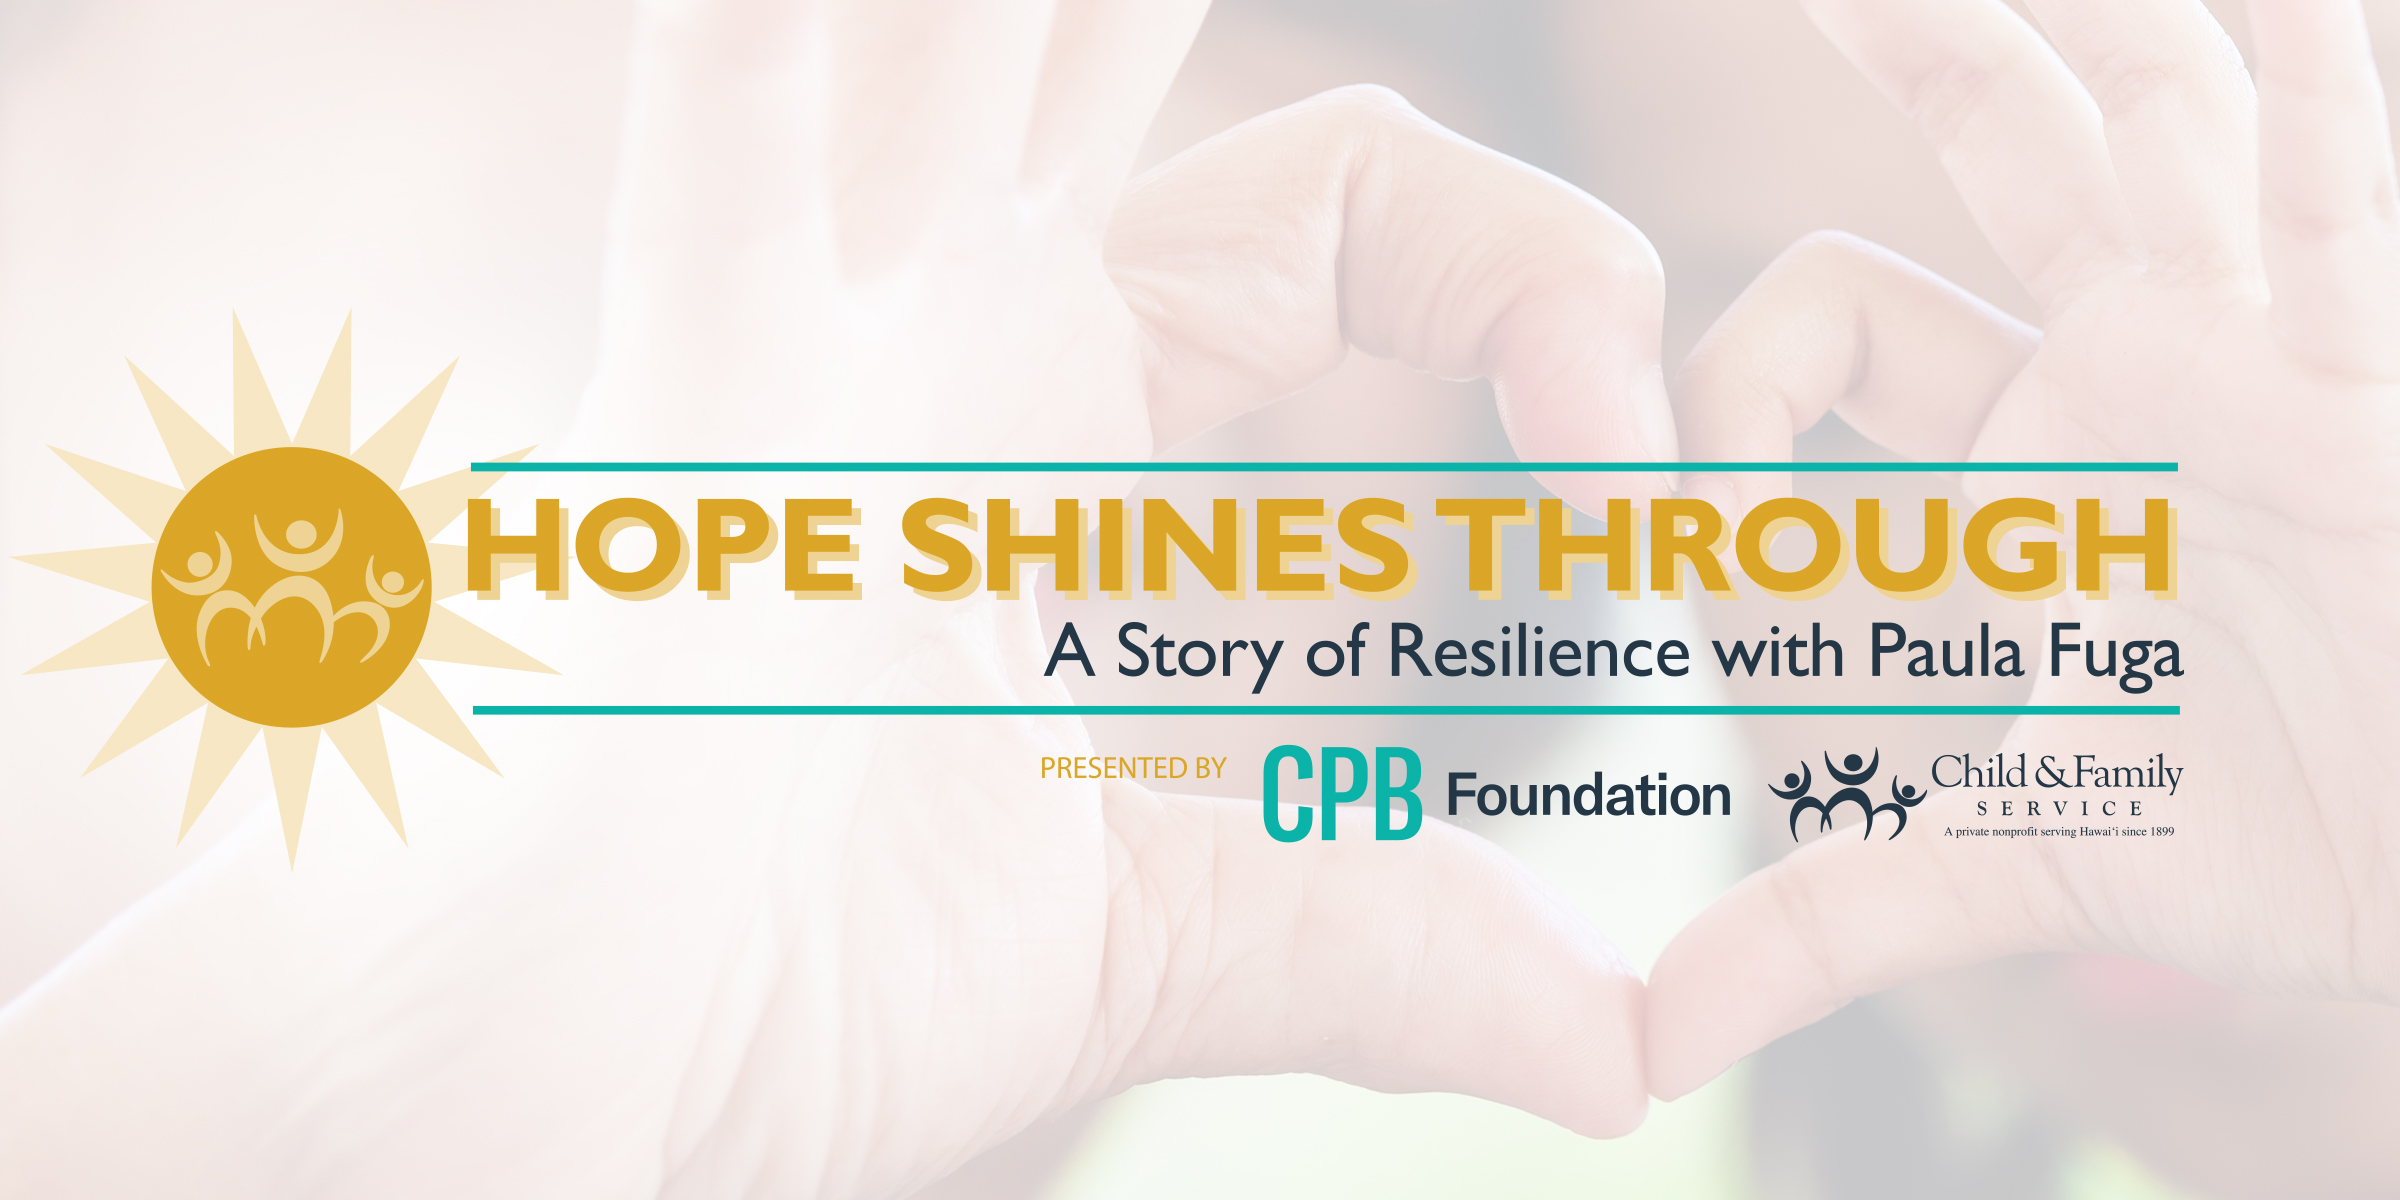 HOPE SHINES THROUGH: A Story of Resilience with Paula Fuga - presented by CPB Foundation and Child & Family Servicev